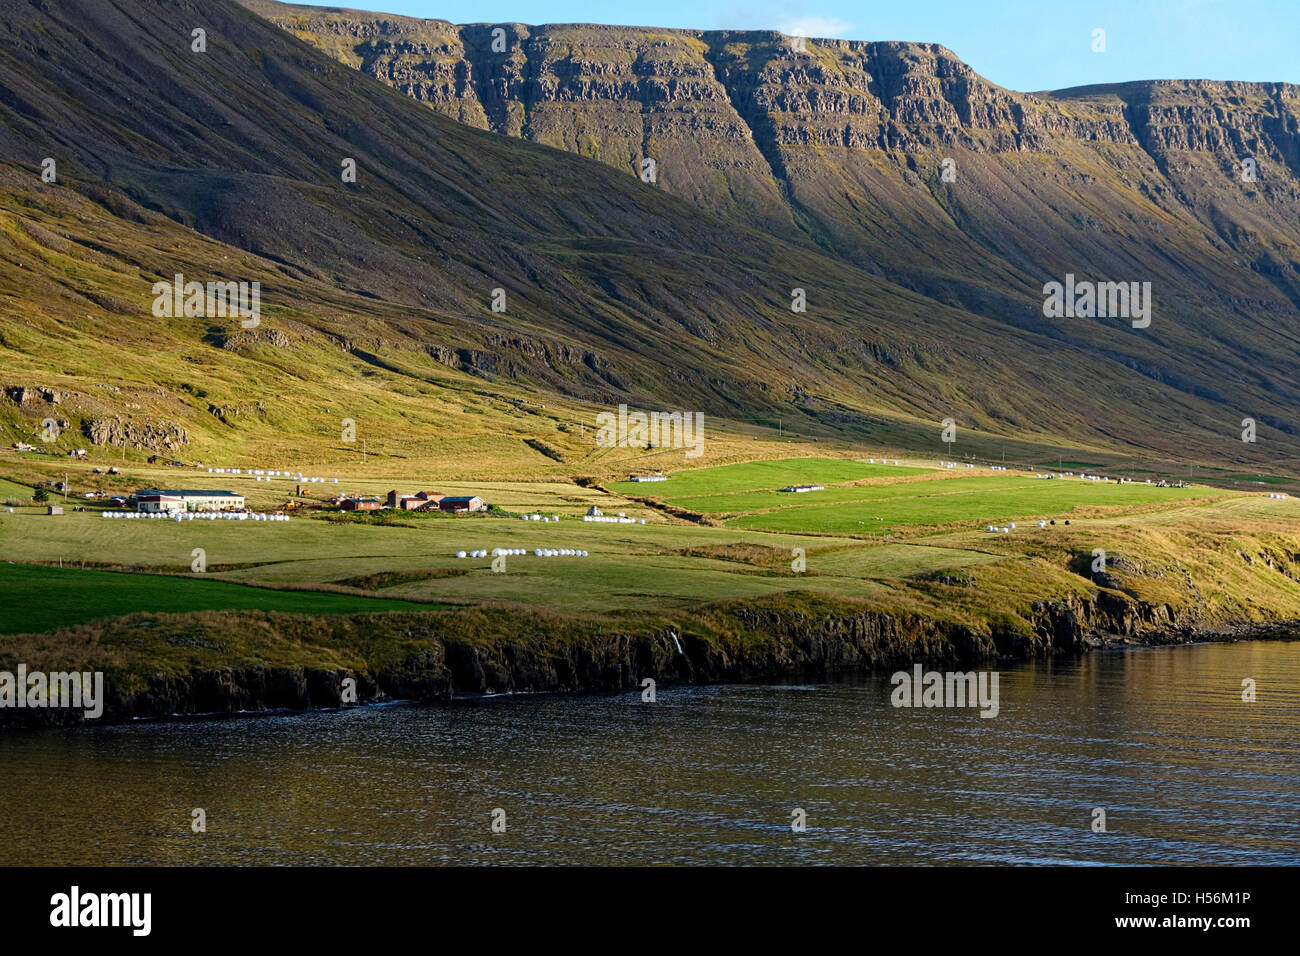 Farm in the Seyoisfjord, Iceland, North Atlantic, Europe - Stock Image